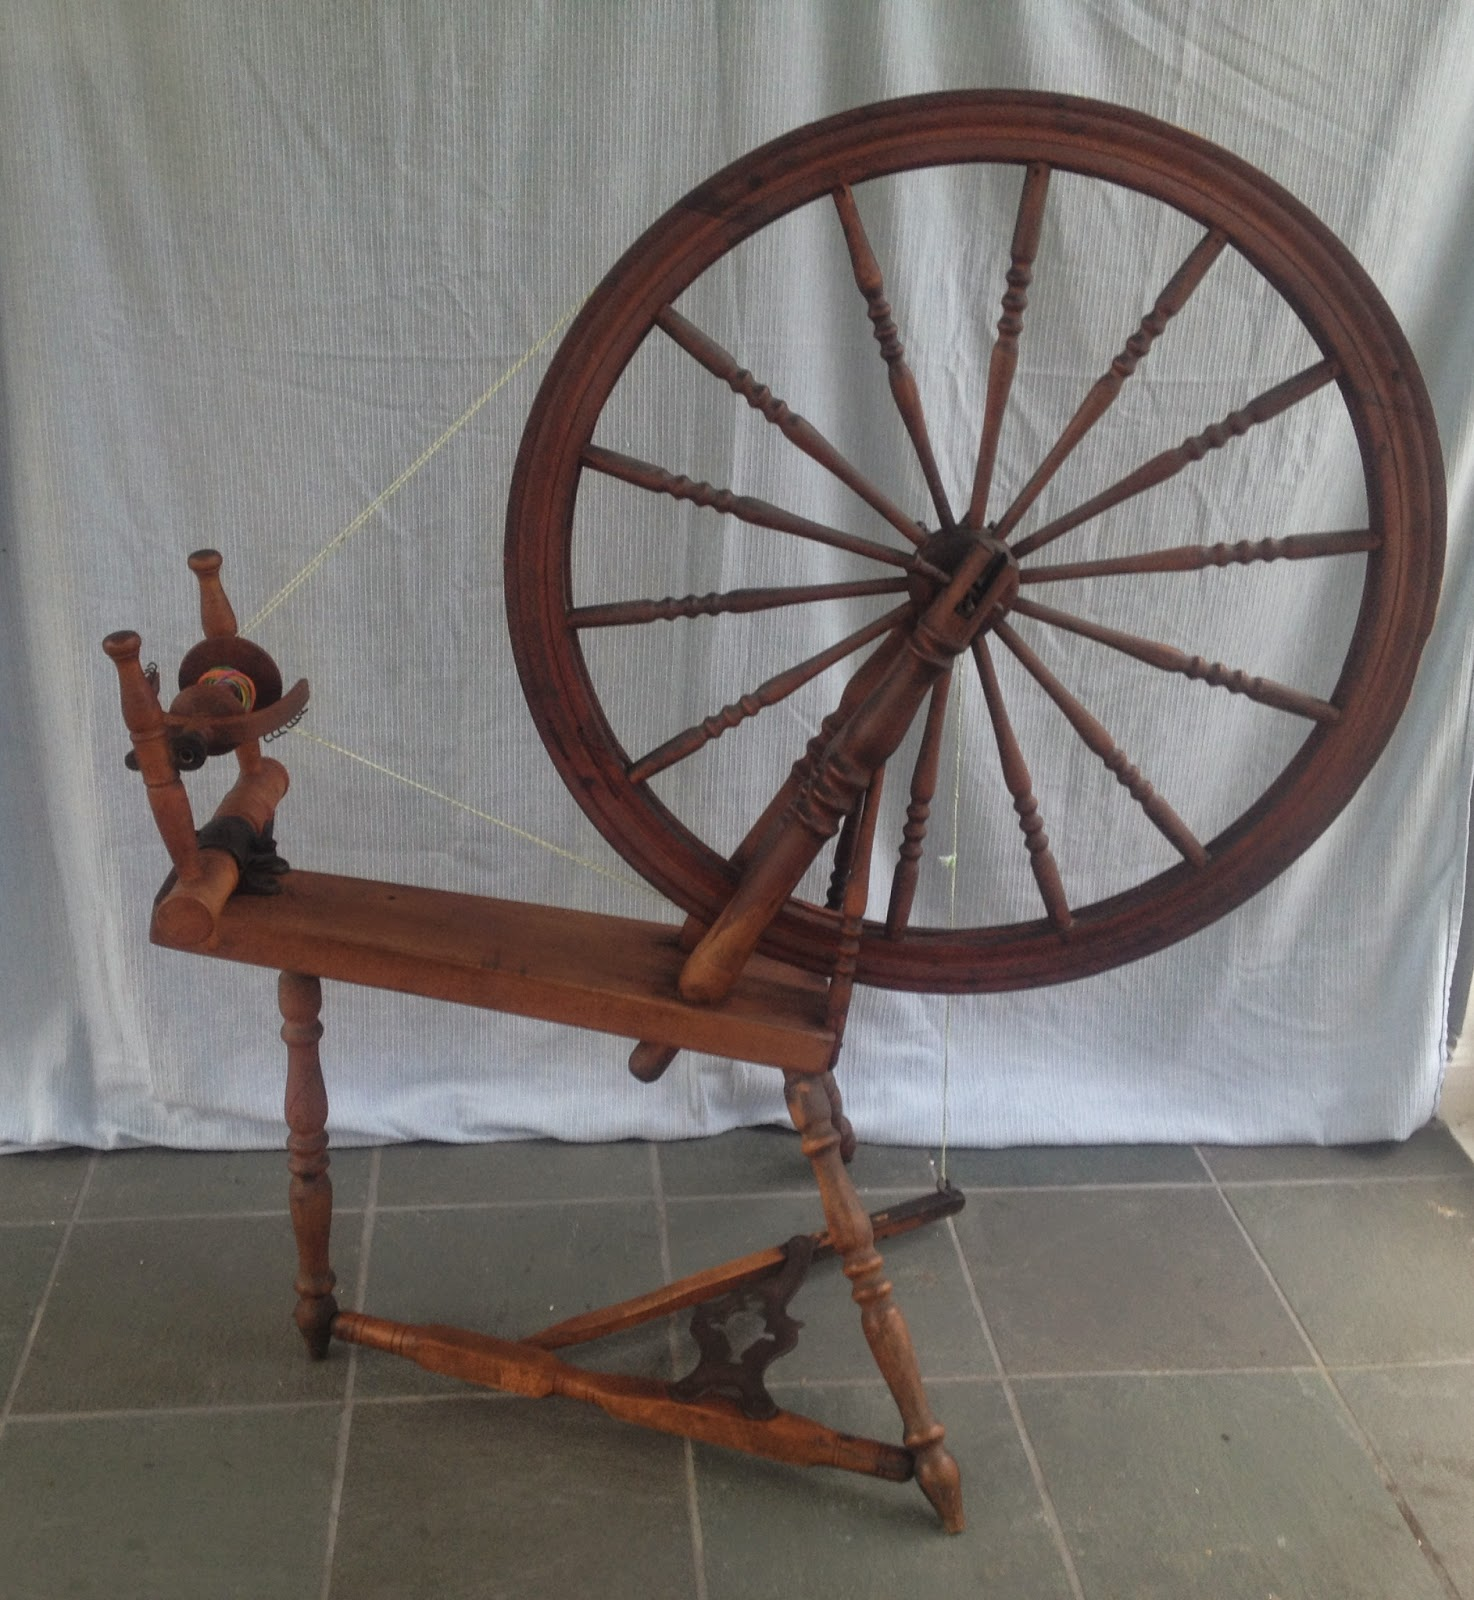 Louie Represents The Rich Tradition Of Spinning Wheel Manufacture In Quebec From 1870 S To 1930 Known As A Canadian Production